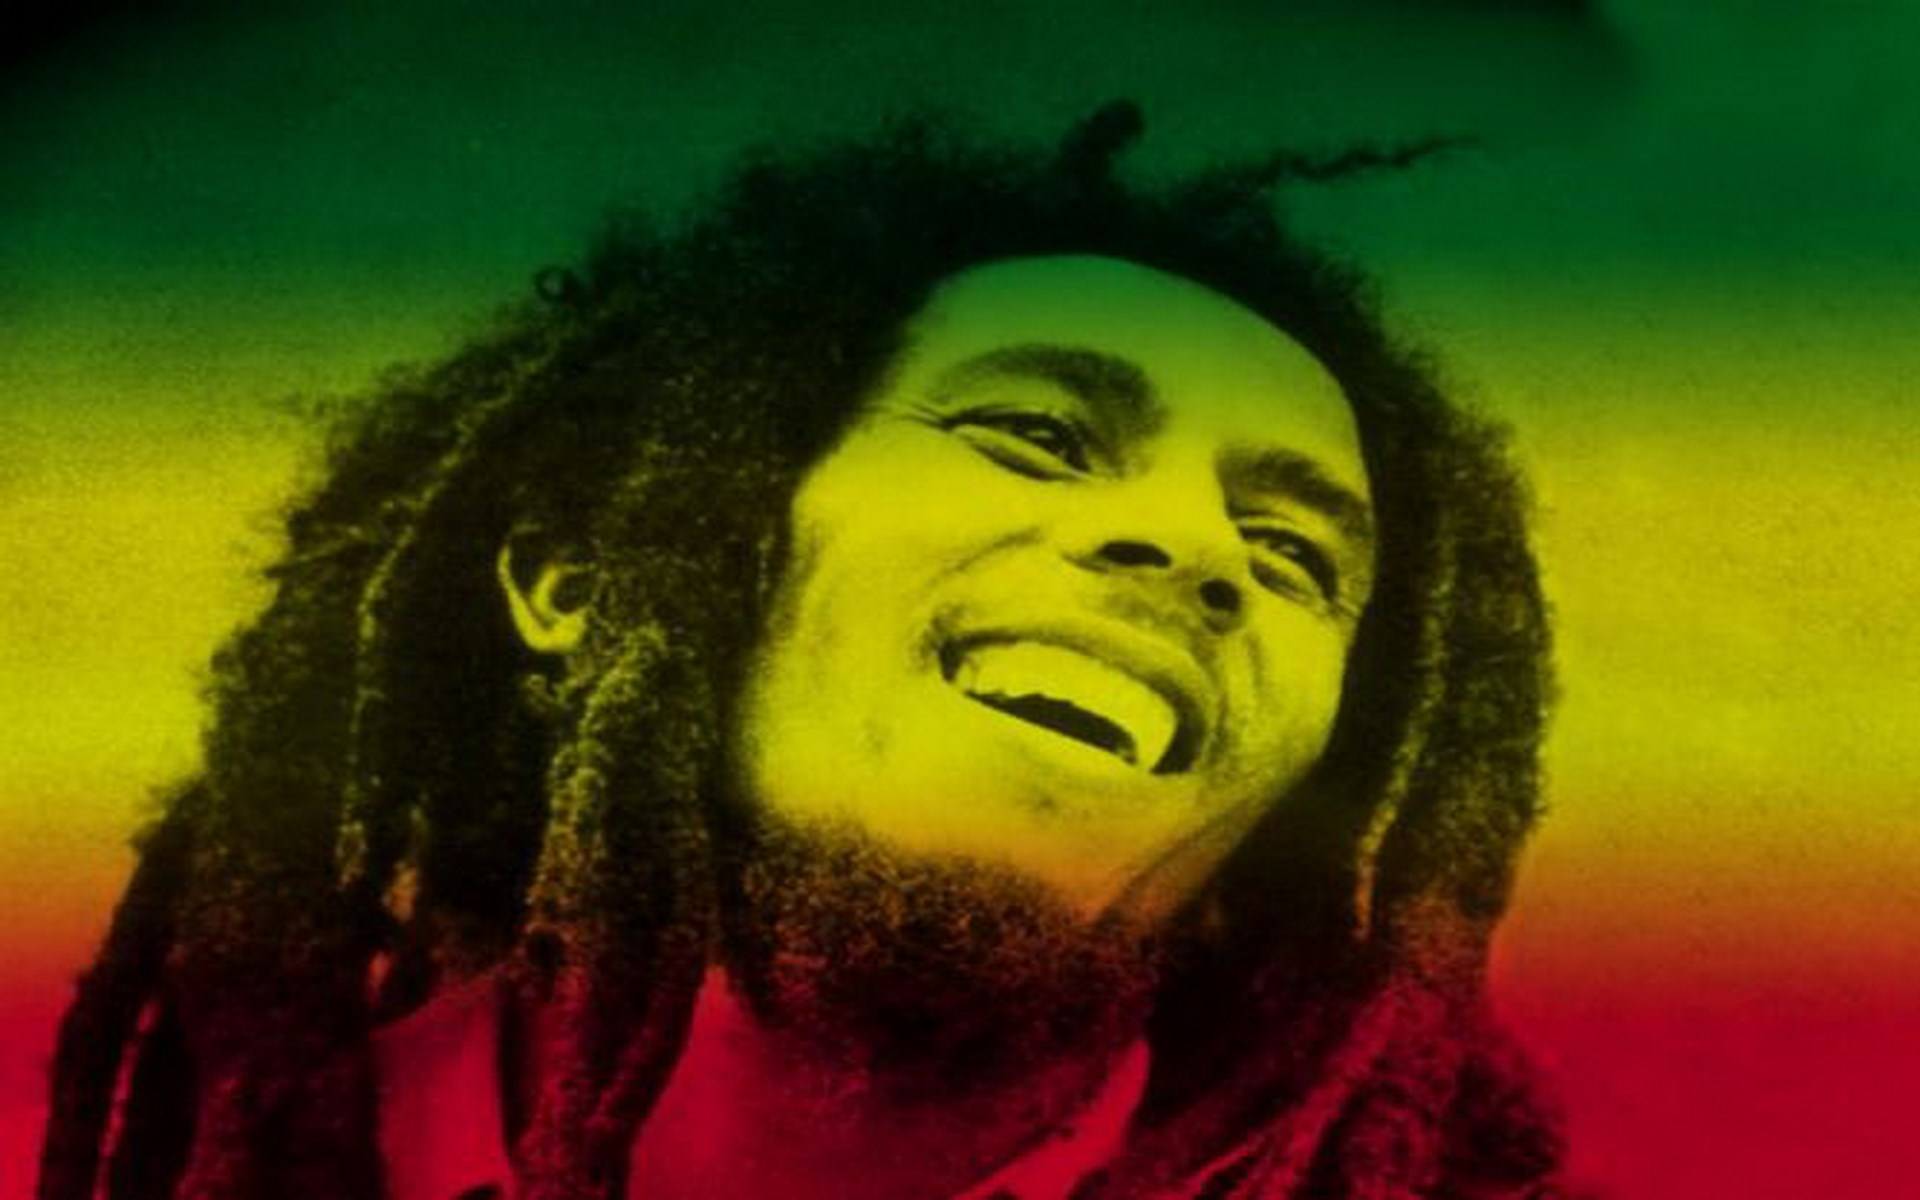 bob-marley-hd-1080p-windows-wallpaper-wpc5802988